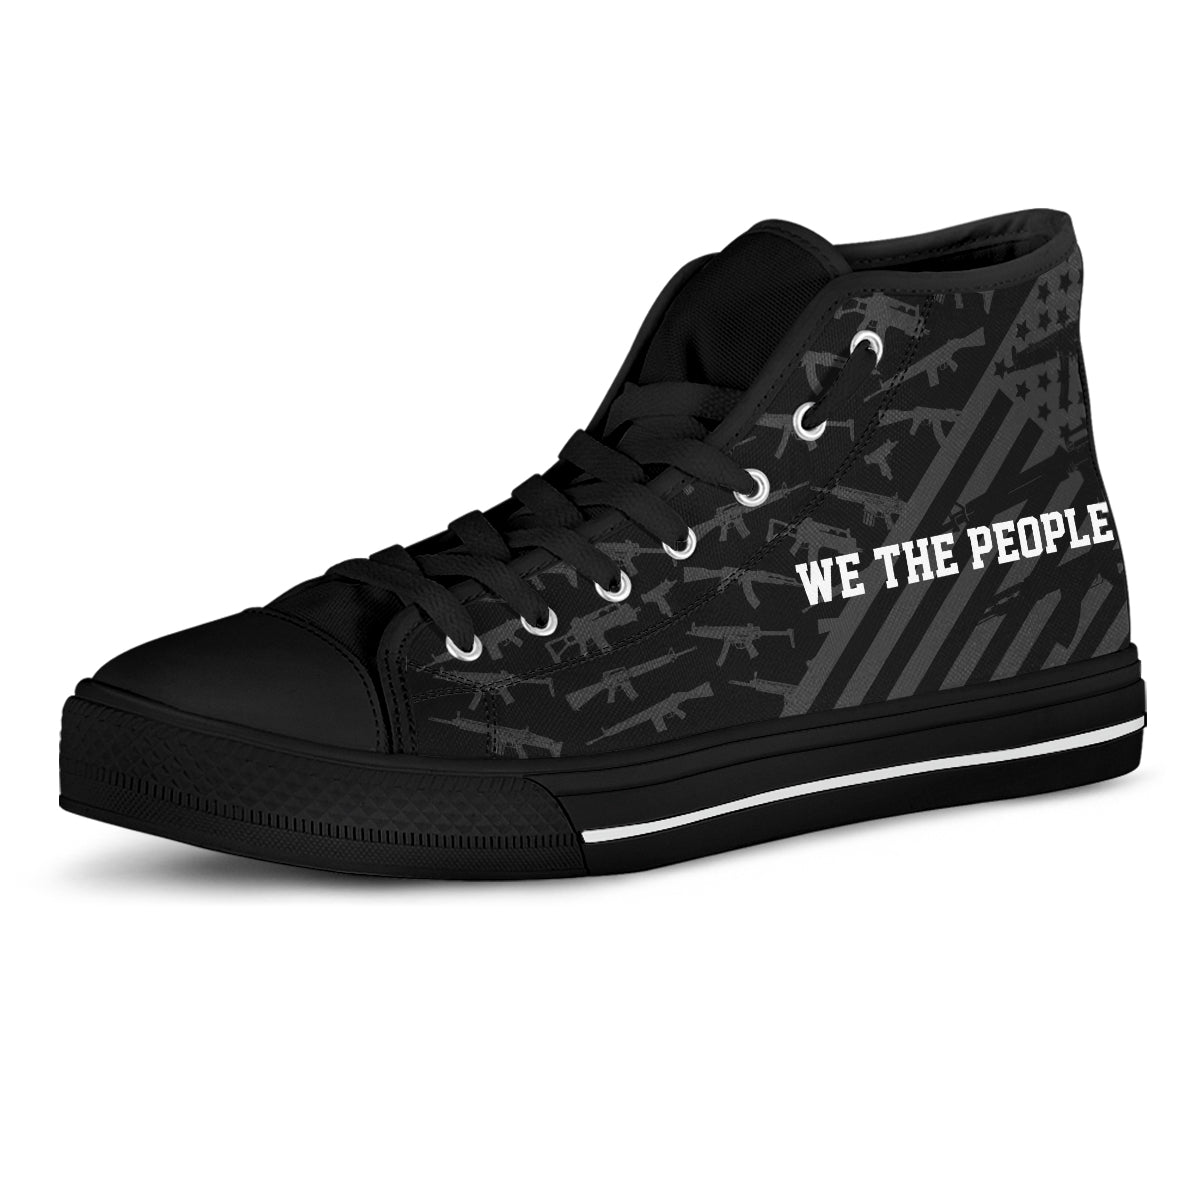 We The People - Women's High Top Shoes